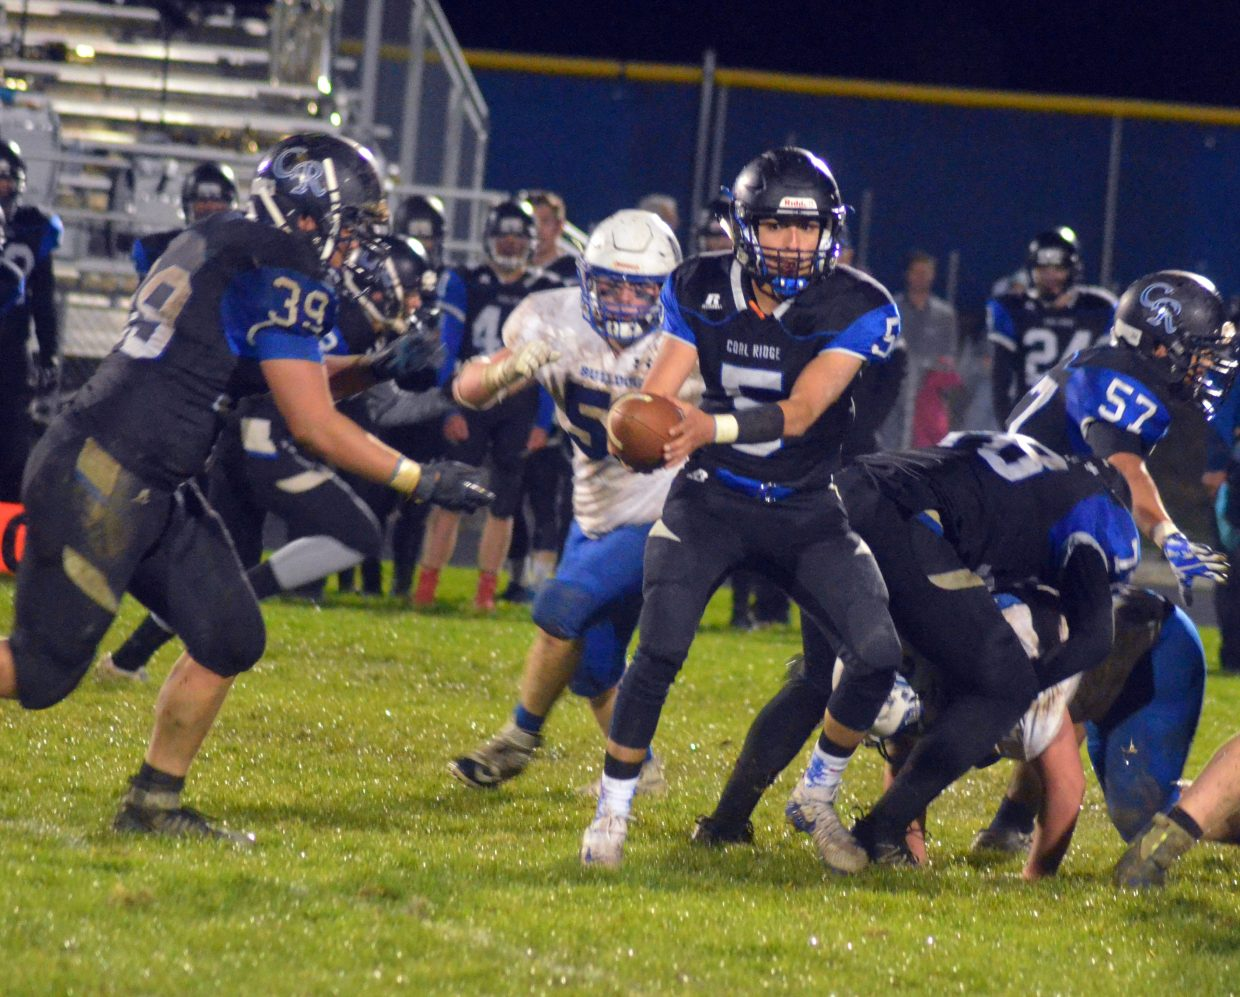 Moffat County High School's Jared Baker comes around the corner as Coal Ridge quarterback Oscar Salazar hands off to Damian Spell.